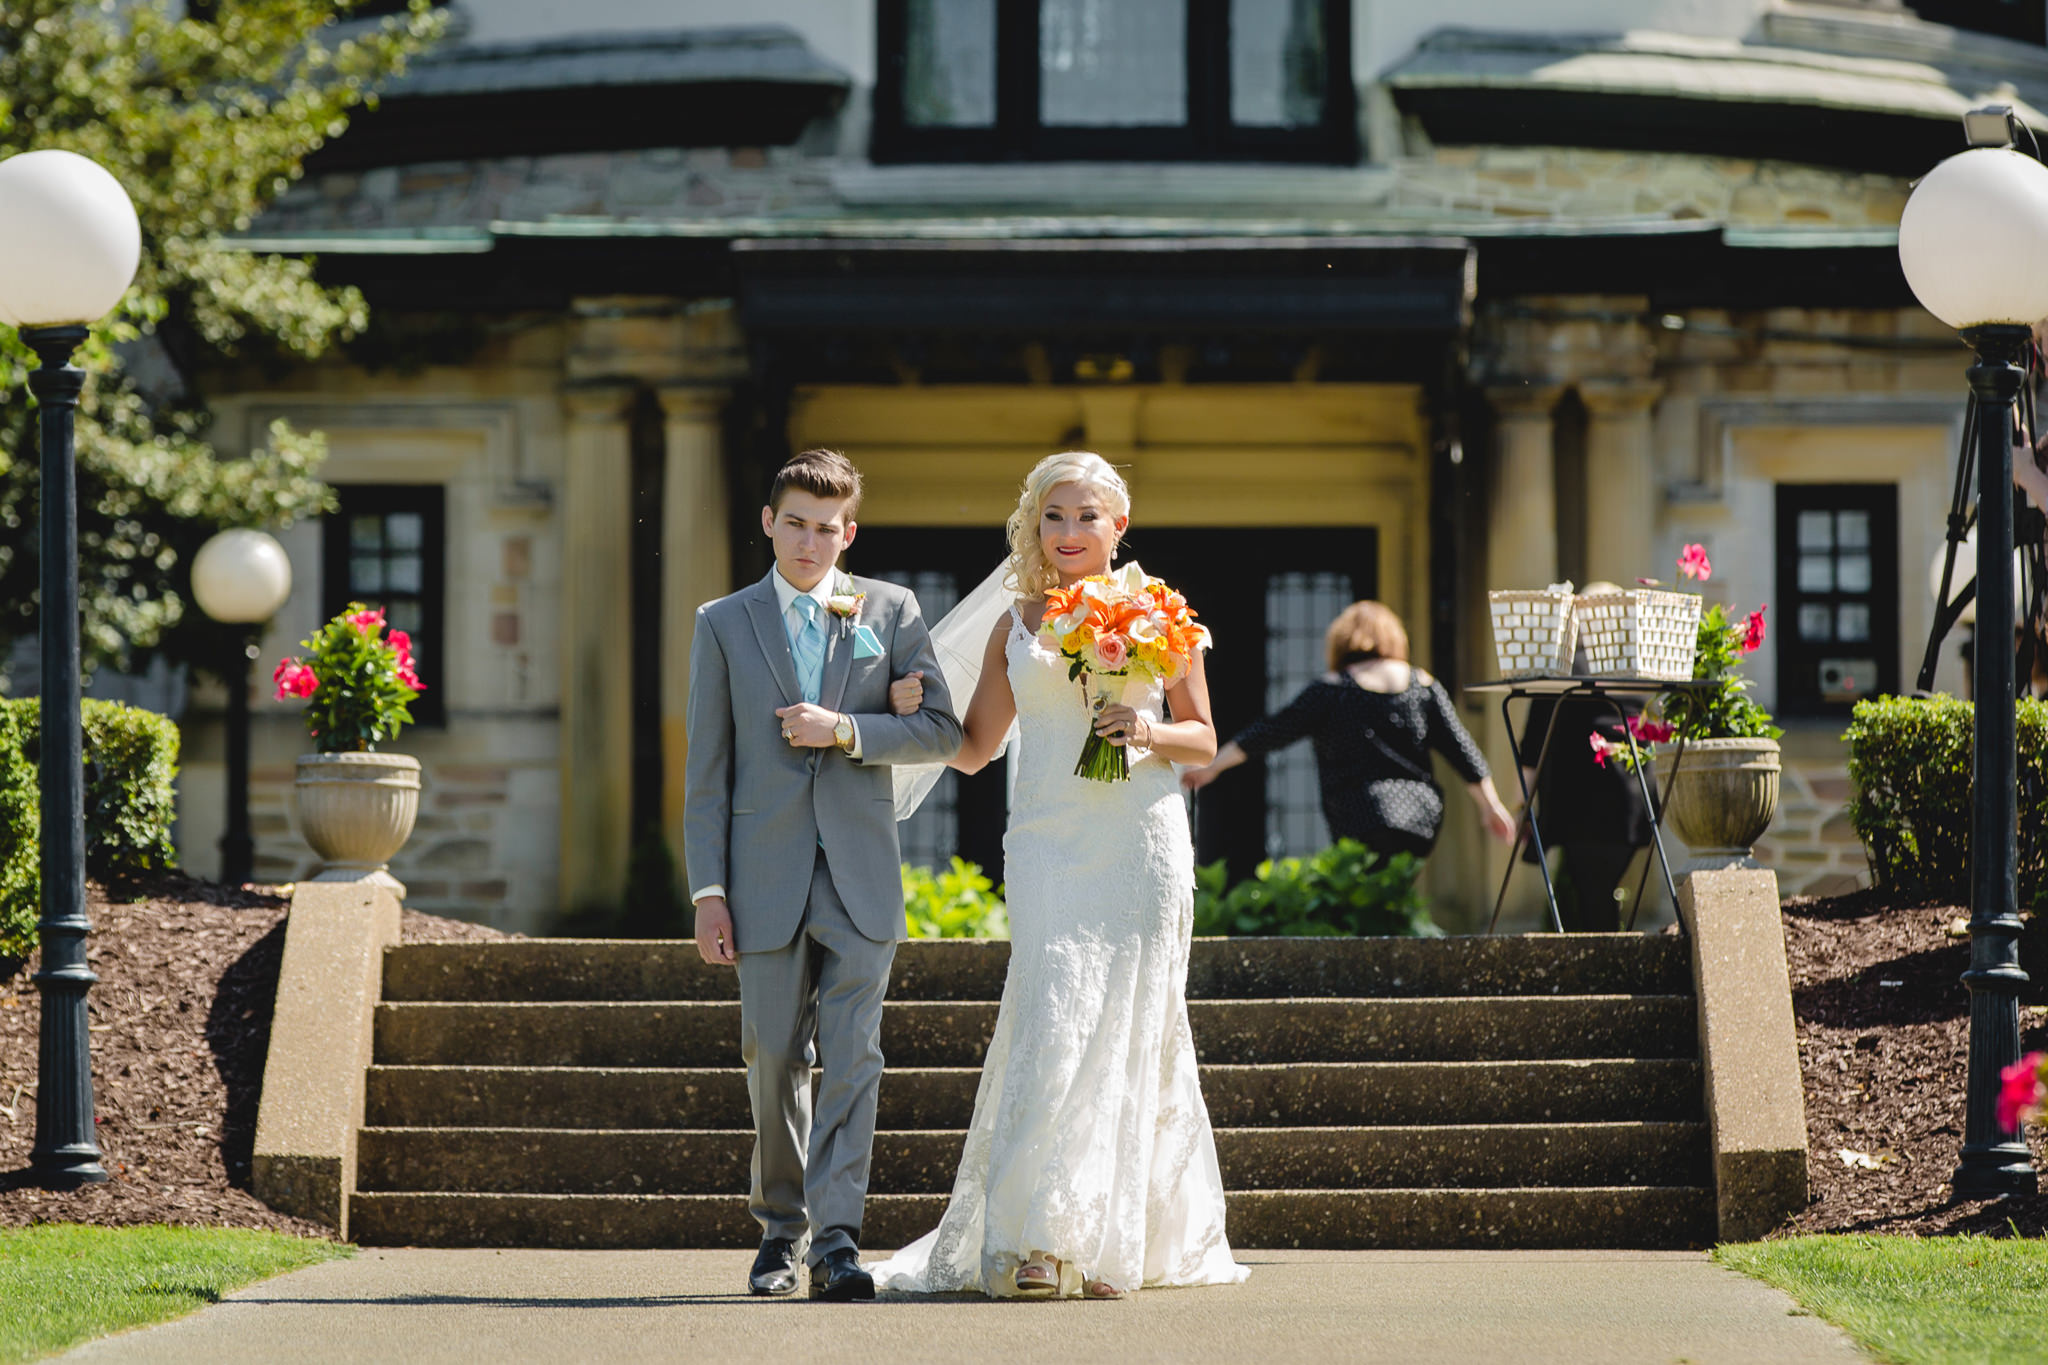 Bride's brother walks her down the aisle at an outdoor ceremony at Linden Hall